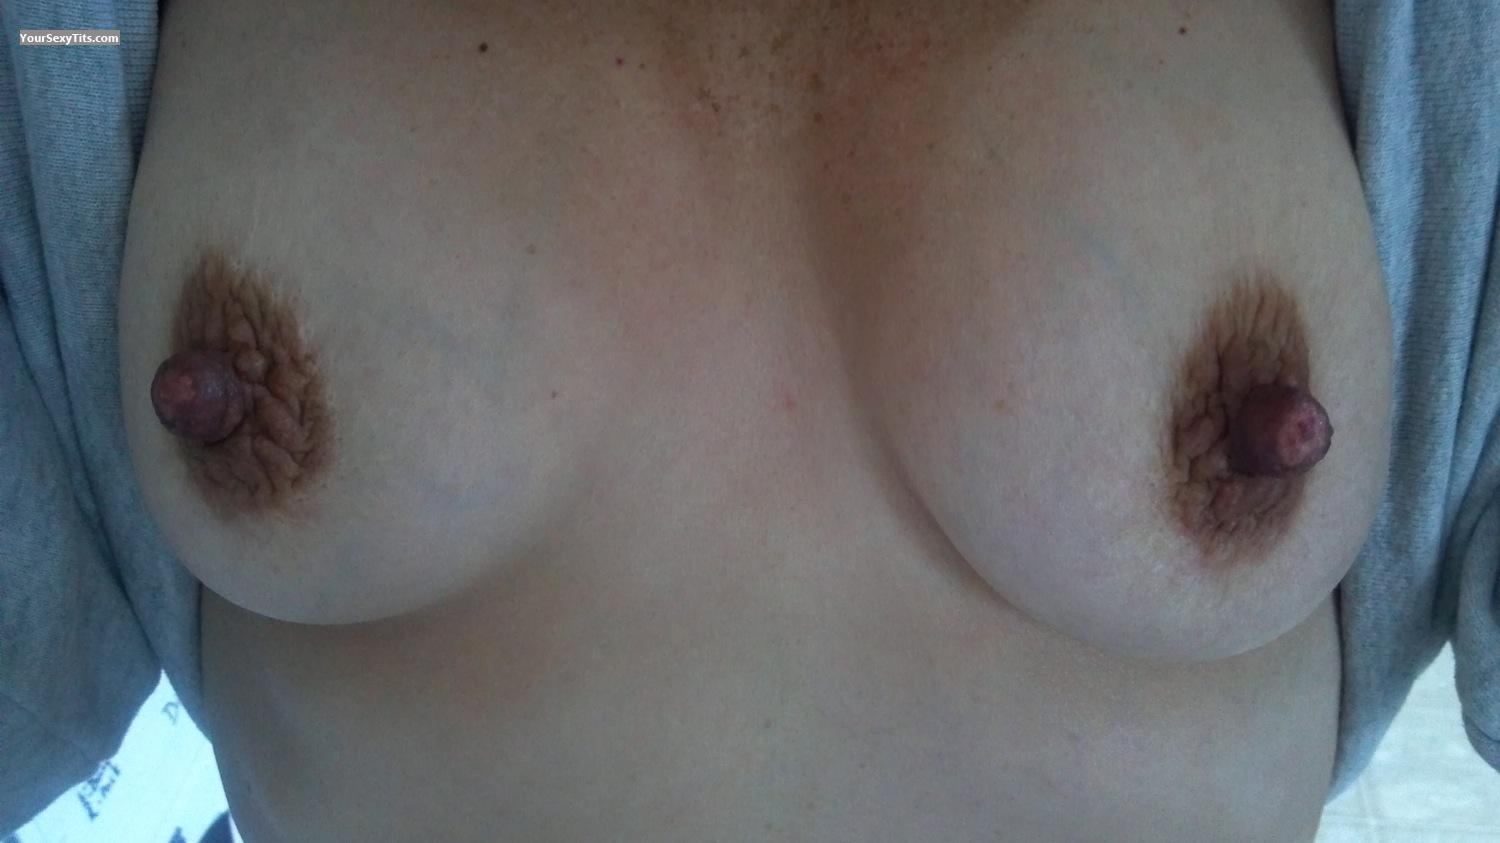 My Small Tits Selfie by GreatNips69